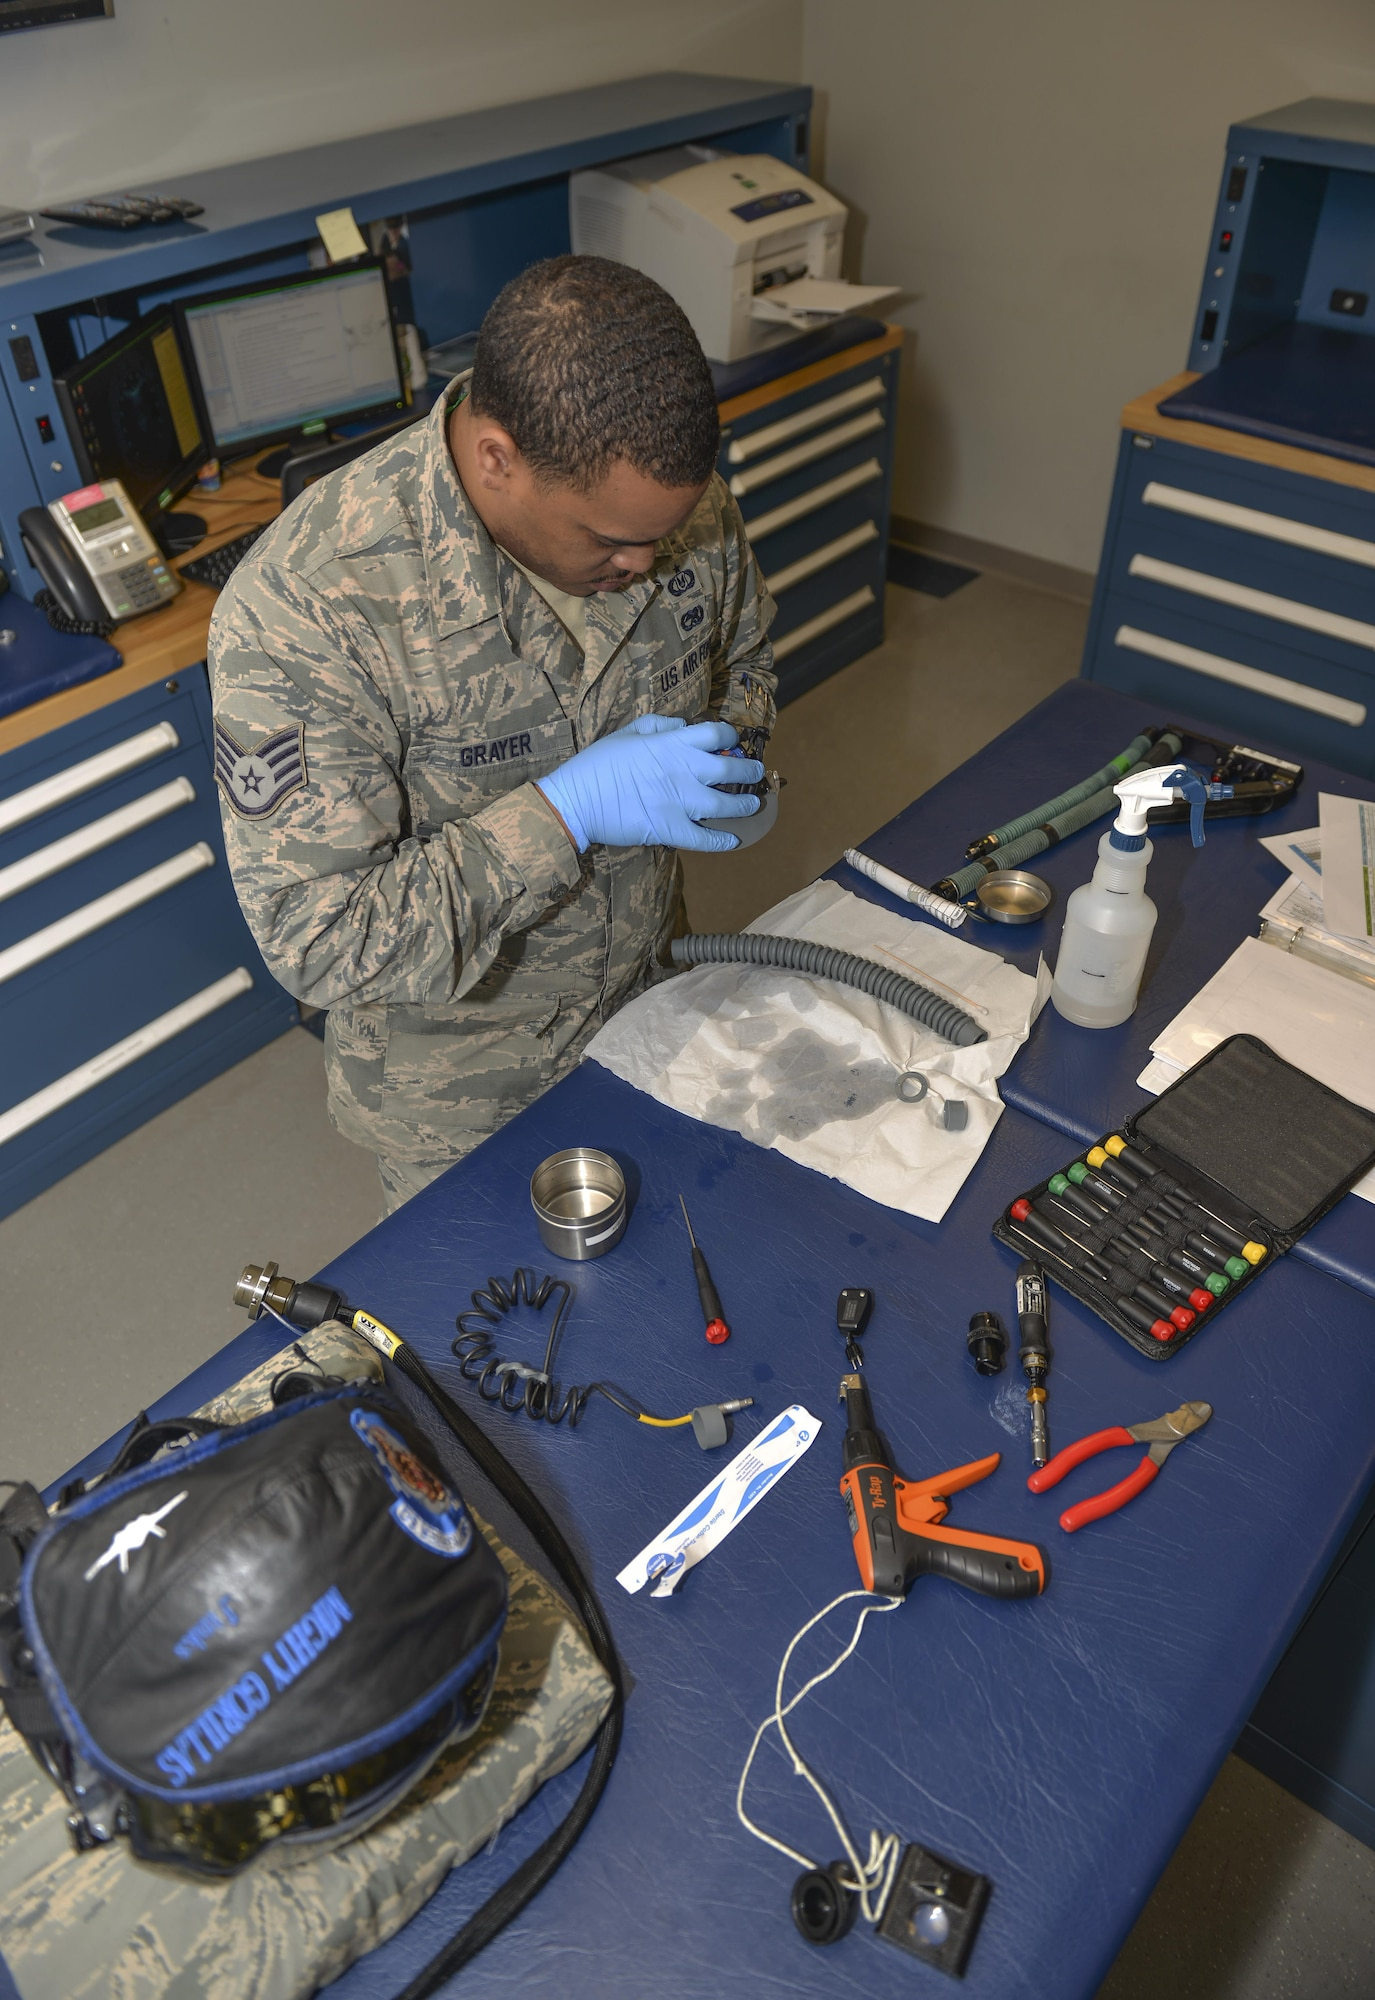 Staff Sgt. Kevin Grayer, 33rd Operations Support Squadron aircrew flight equipment technician, inspects an F-35A Lightning II helmet-mounted display at Eglin Air Force Base, Fla., Feb. 29, 2016. The F-35 display projects information onto the pilot's visor to provide maximum situational awareness while in flight. In legacy aircraft, this information is presented on a screen in the cockpit. Flight equipment technicians at the 33rd Fighter Wing are the leading AFE shop for the F-35 program making them responsible for creating action reports, joint technical data and updating fifth generation flight equipment. (U.S. Air Force photo/Senior Airman Andrea Posey)